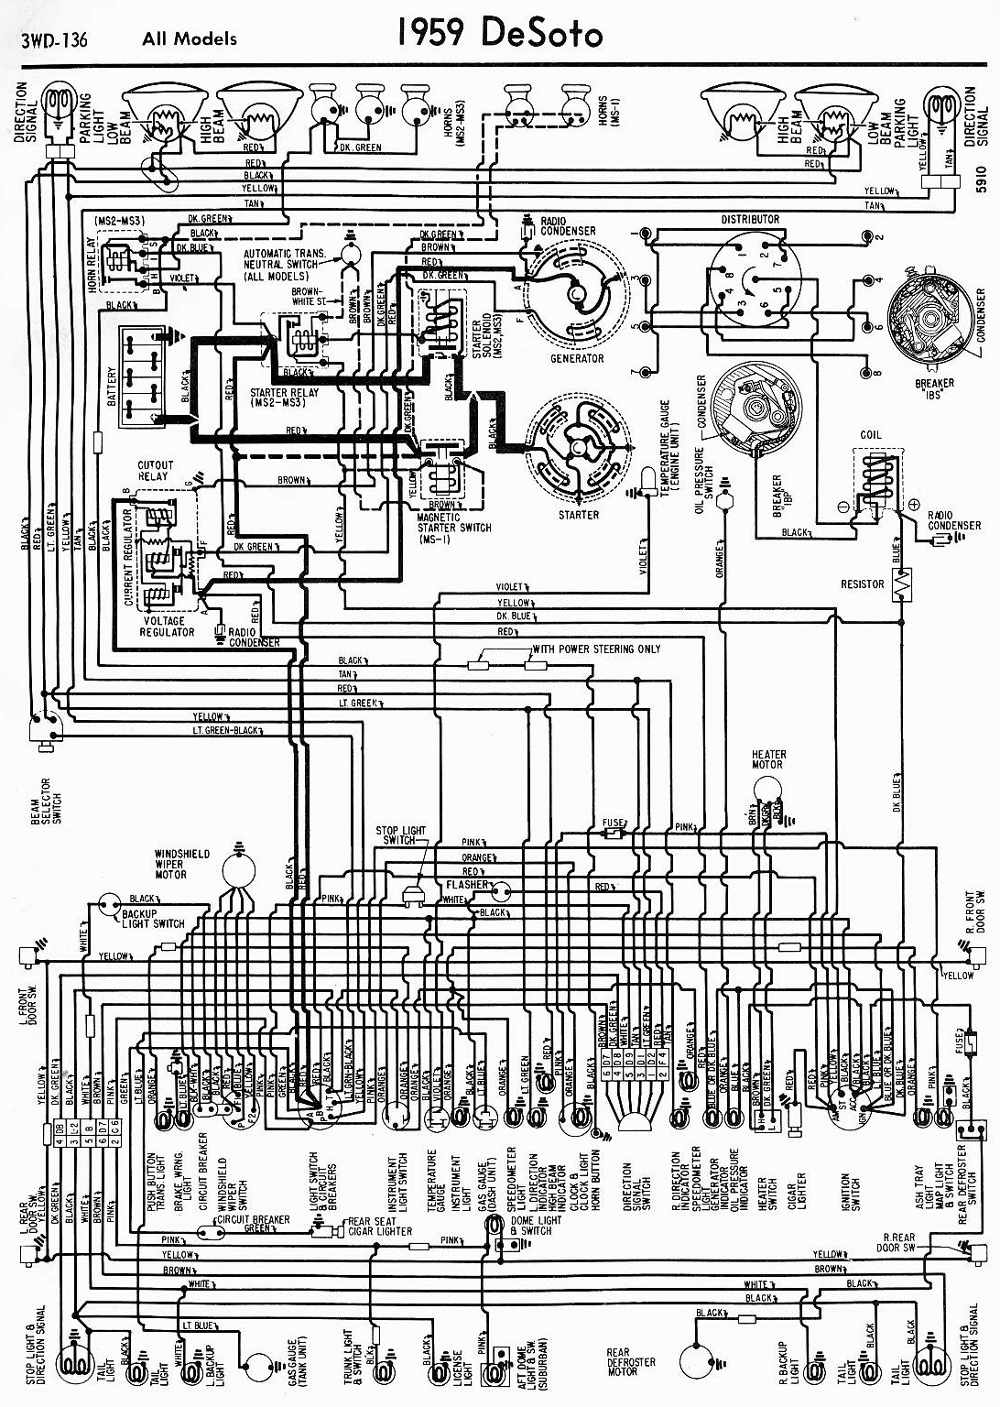 wiring diagrams of 1959 desoto all models?t=1508403749 de soto car manuals, wiring diagrams pdf & fault codes 1941 desoto wiring diagram at reclaimingppi.co